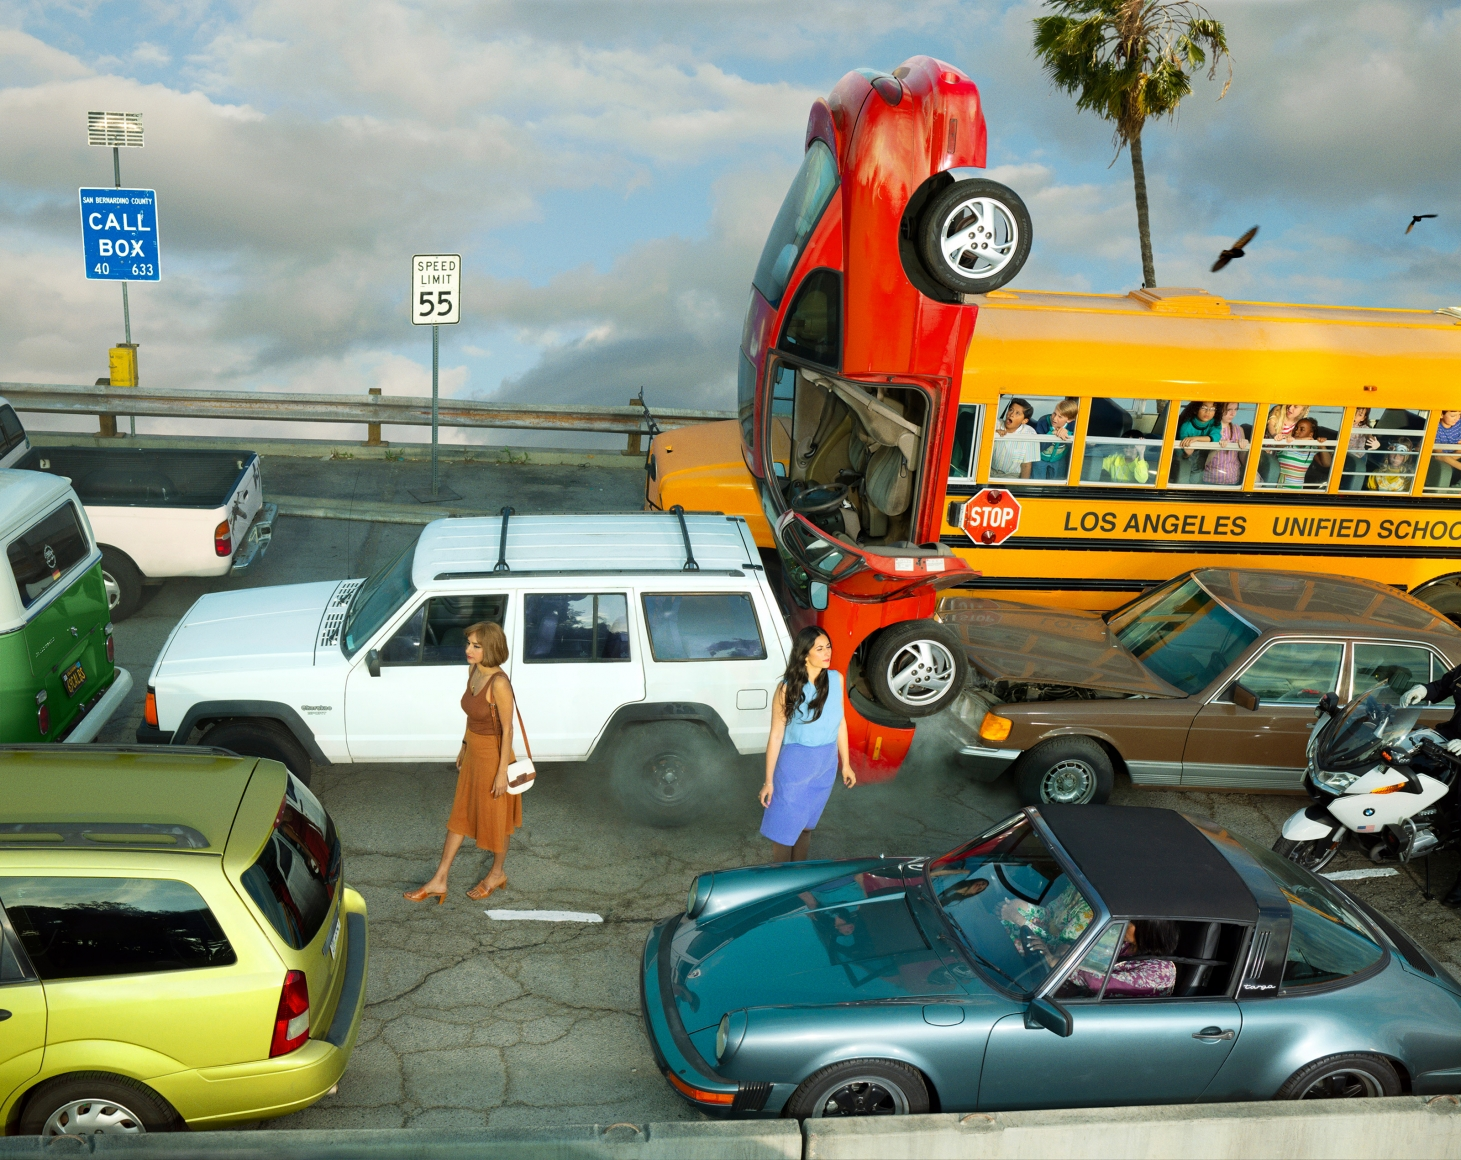 ALEX PRAGER, Speed Limit, 2019